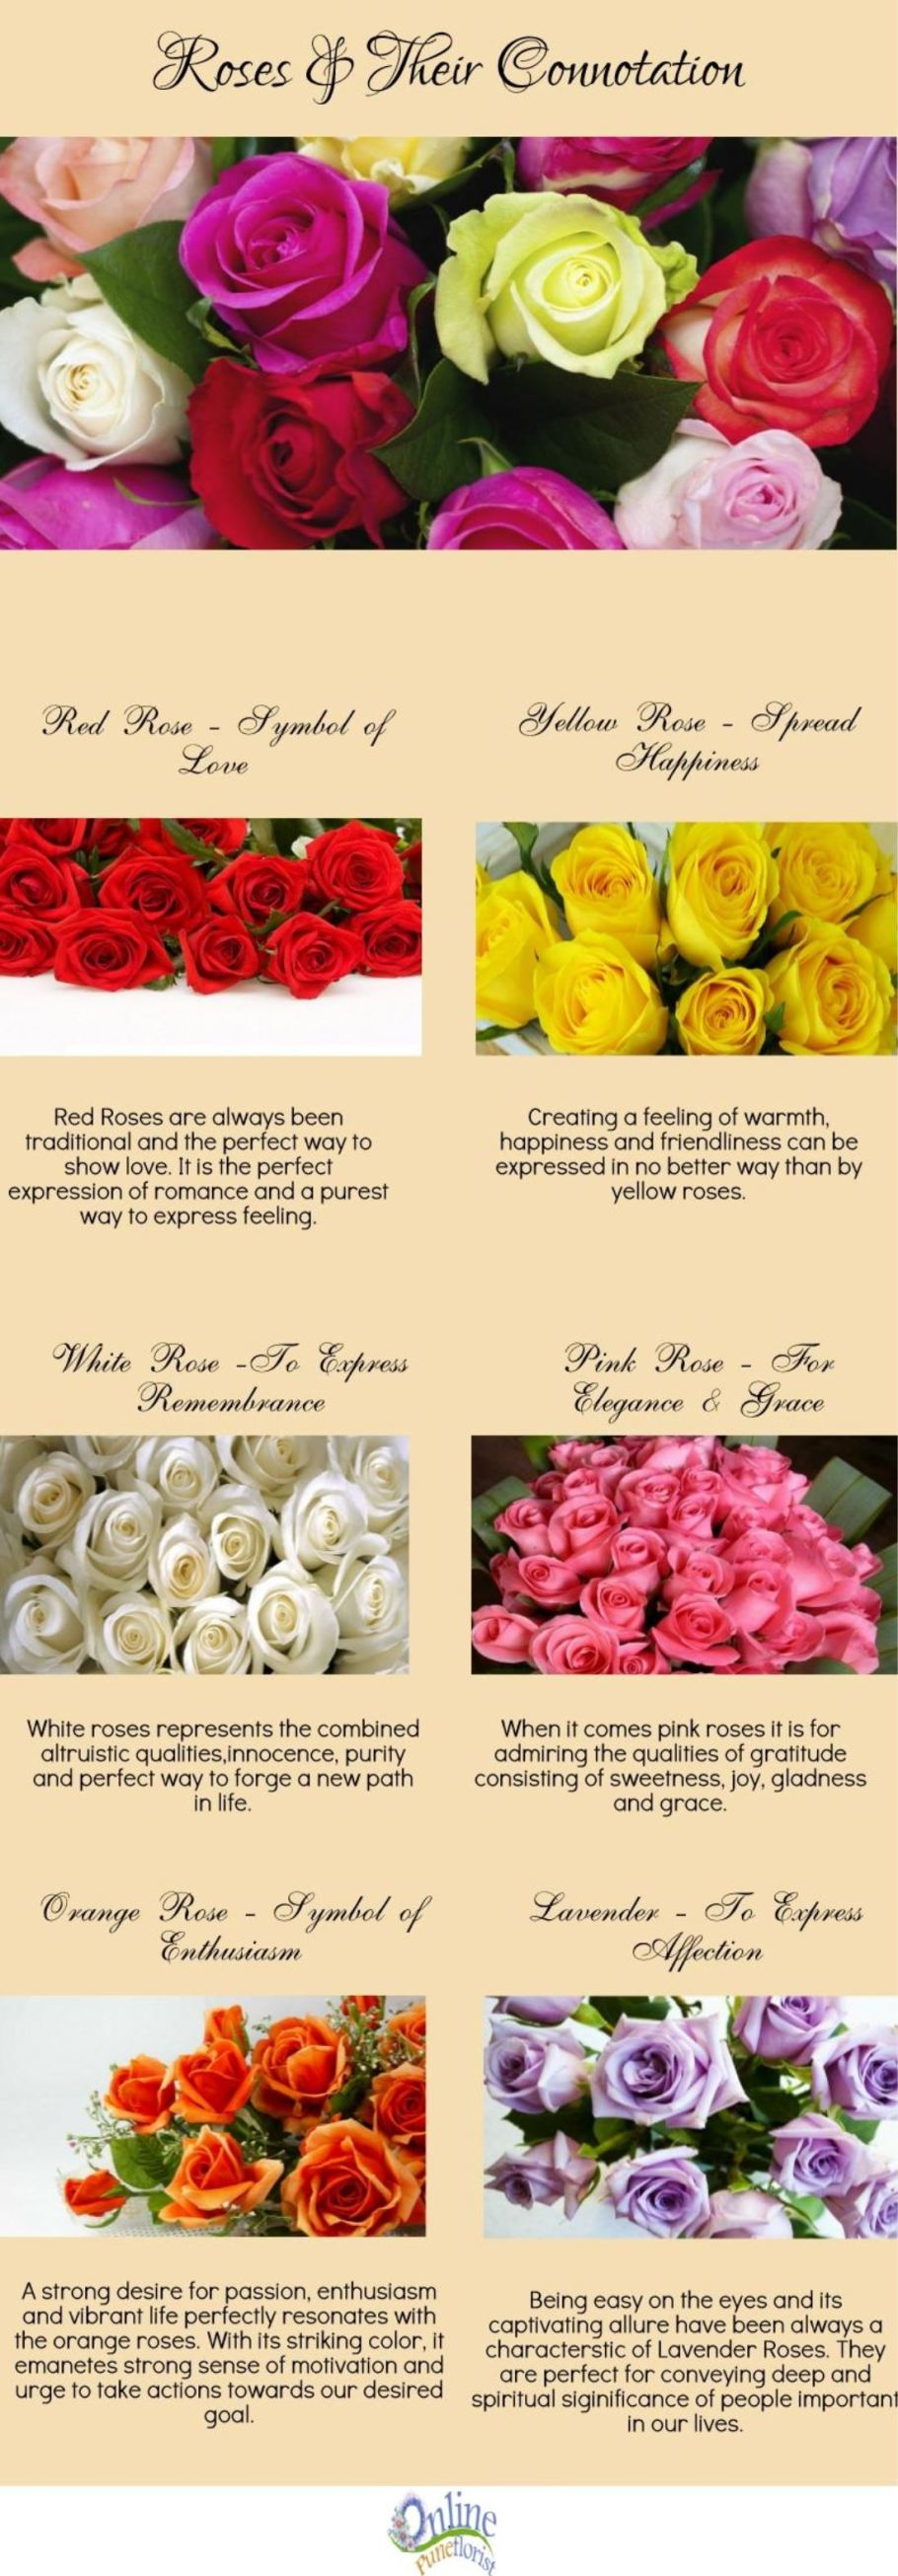 roses and its connotation